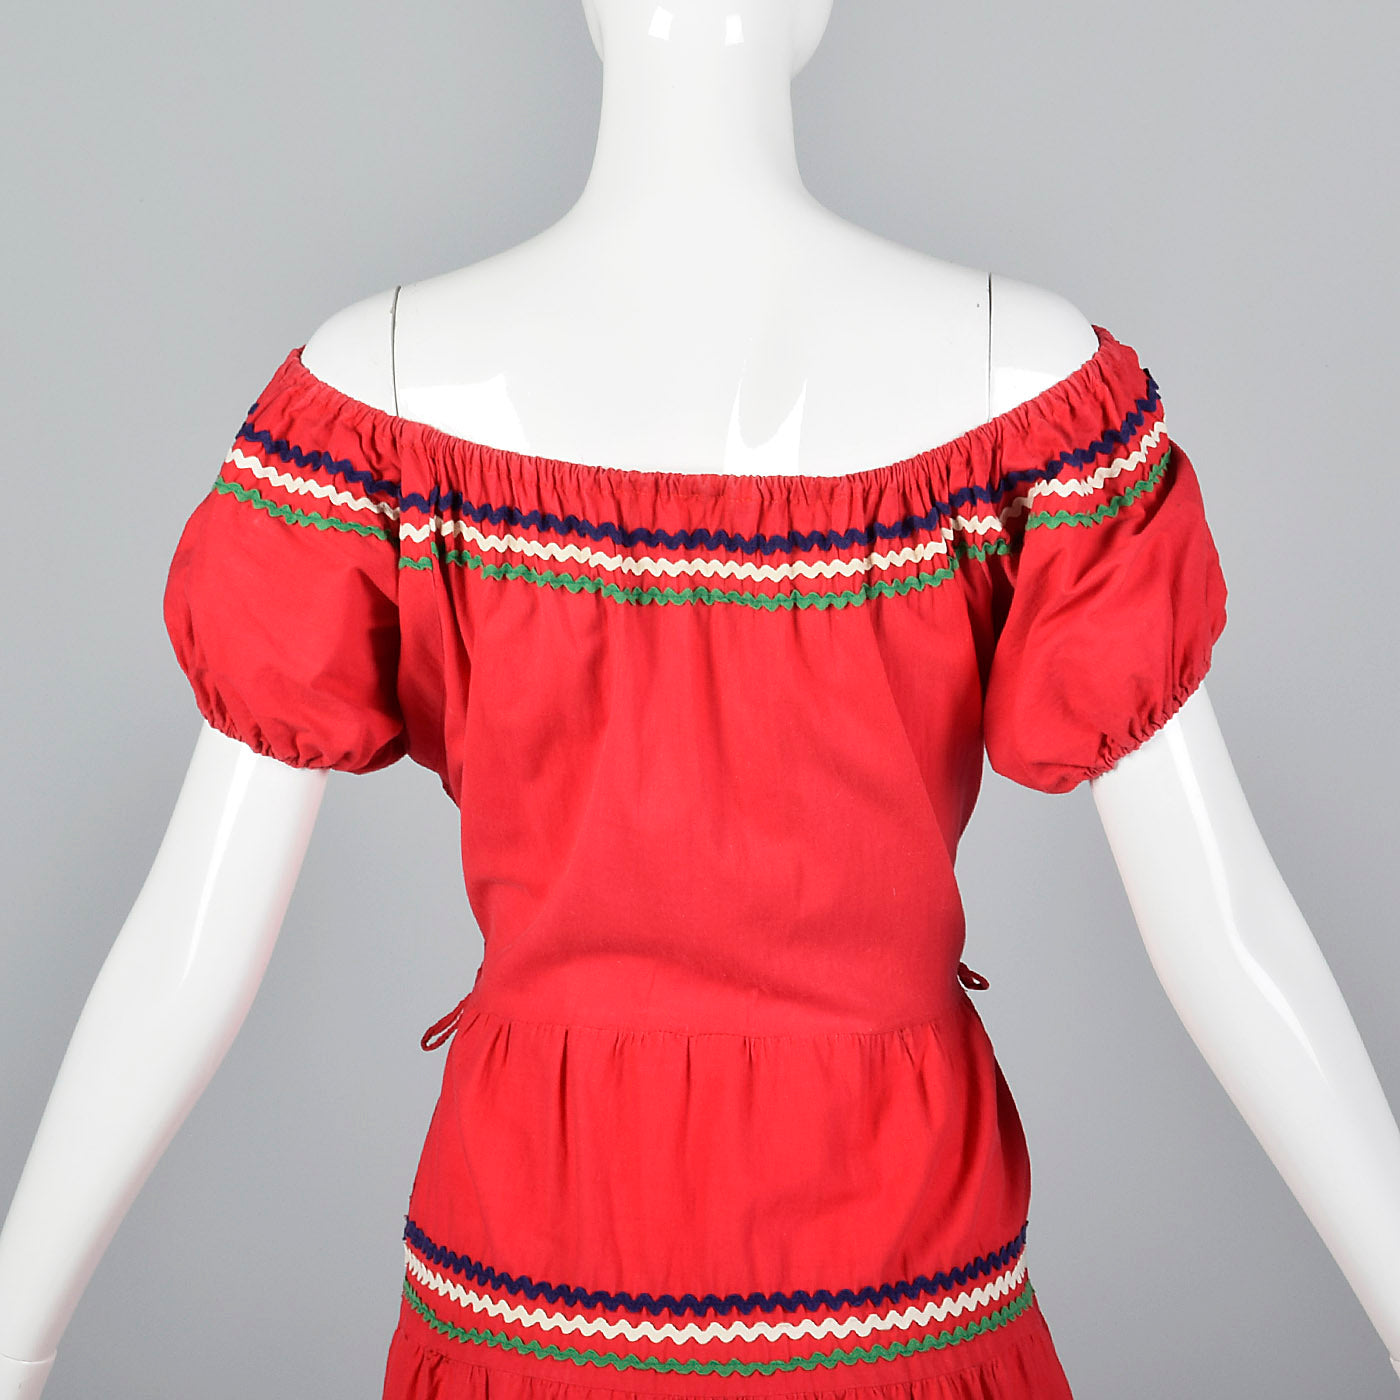 1950s Bohemian Off Shoulder Dress in Red Cotton